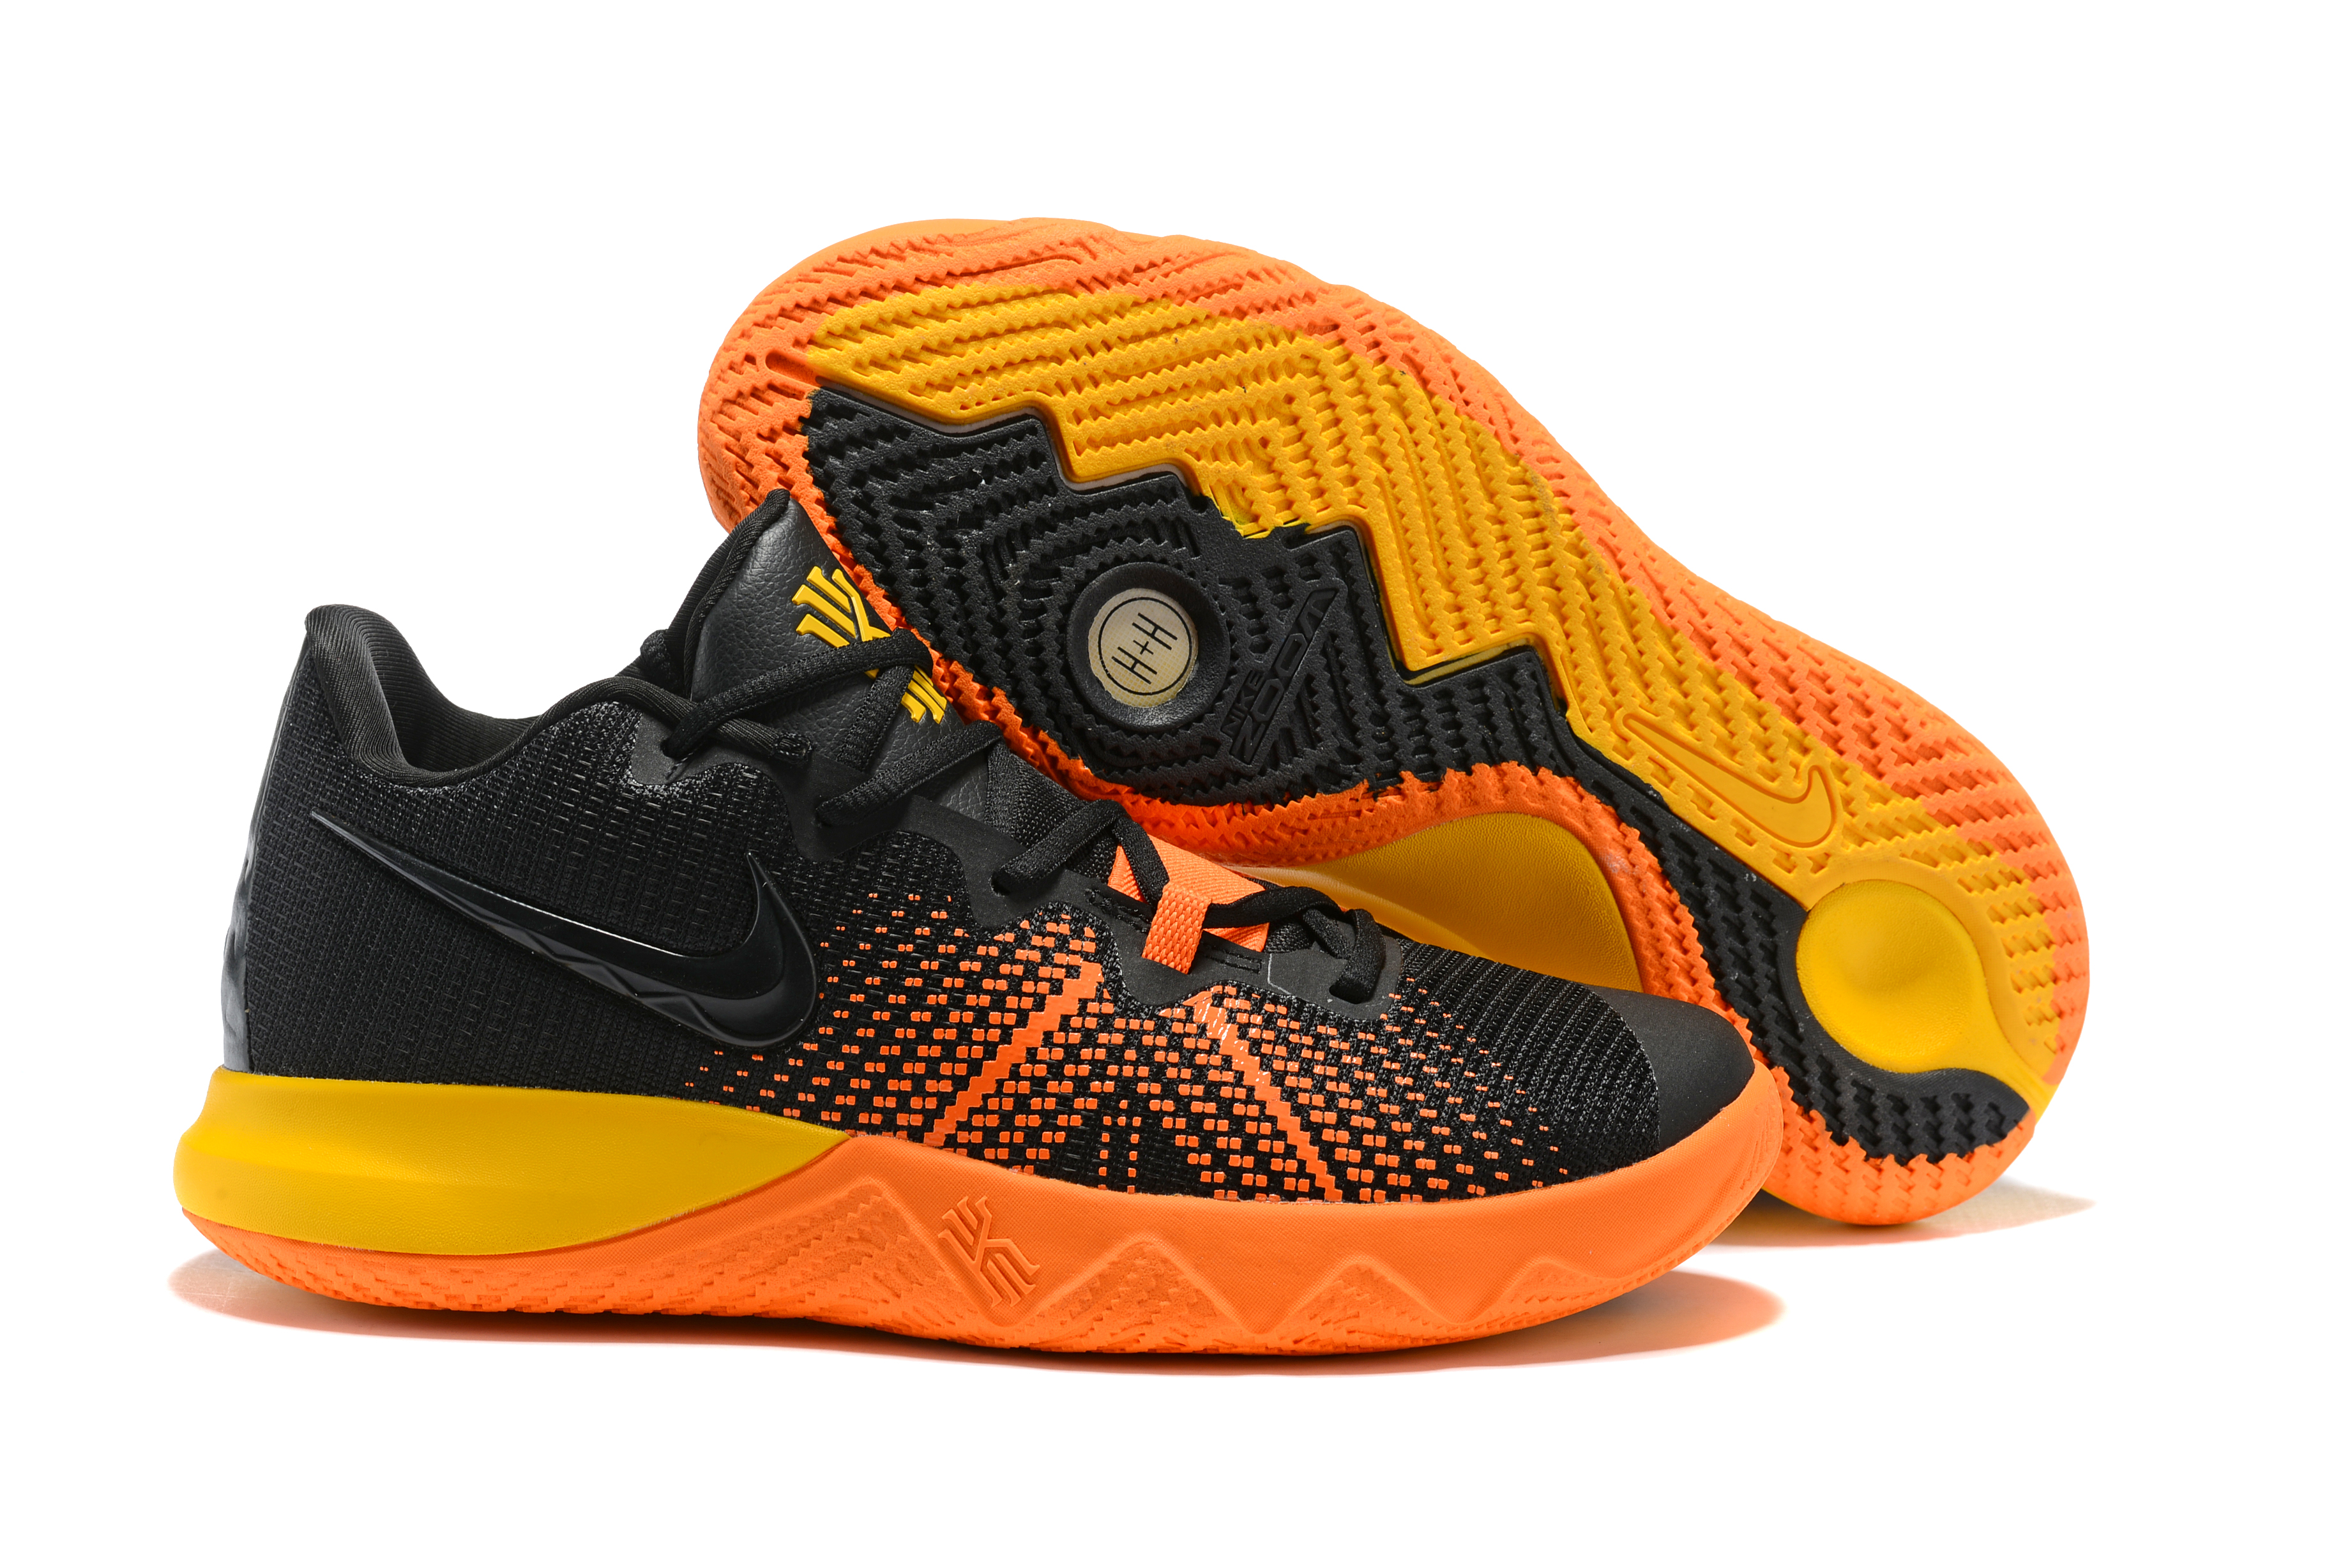 Nike Kyrie Flytrap Black Orange Yellow Shoes